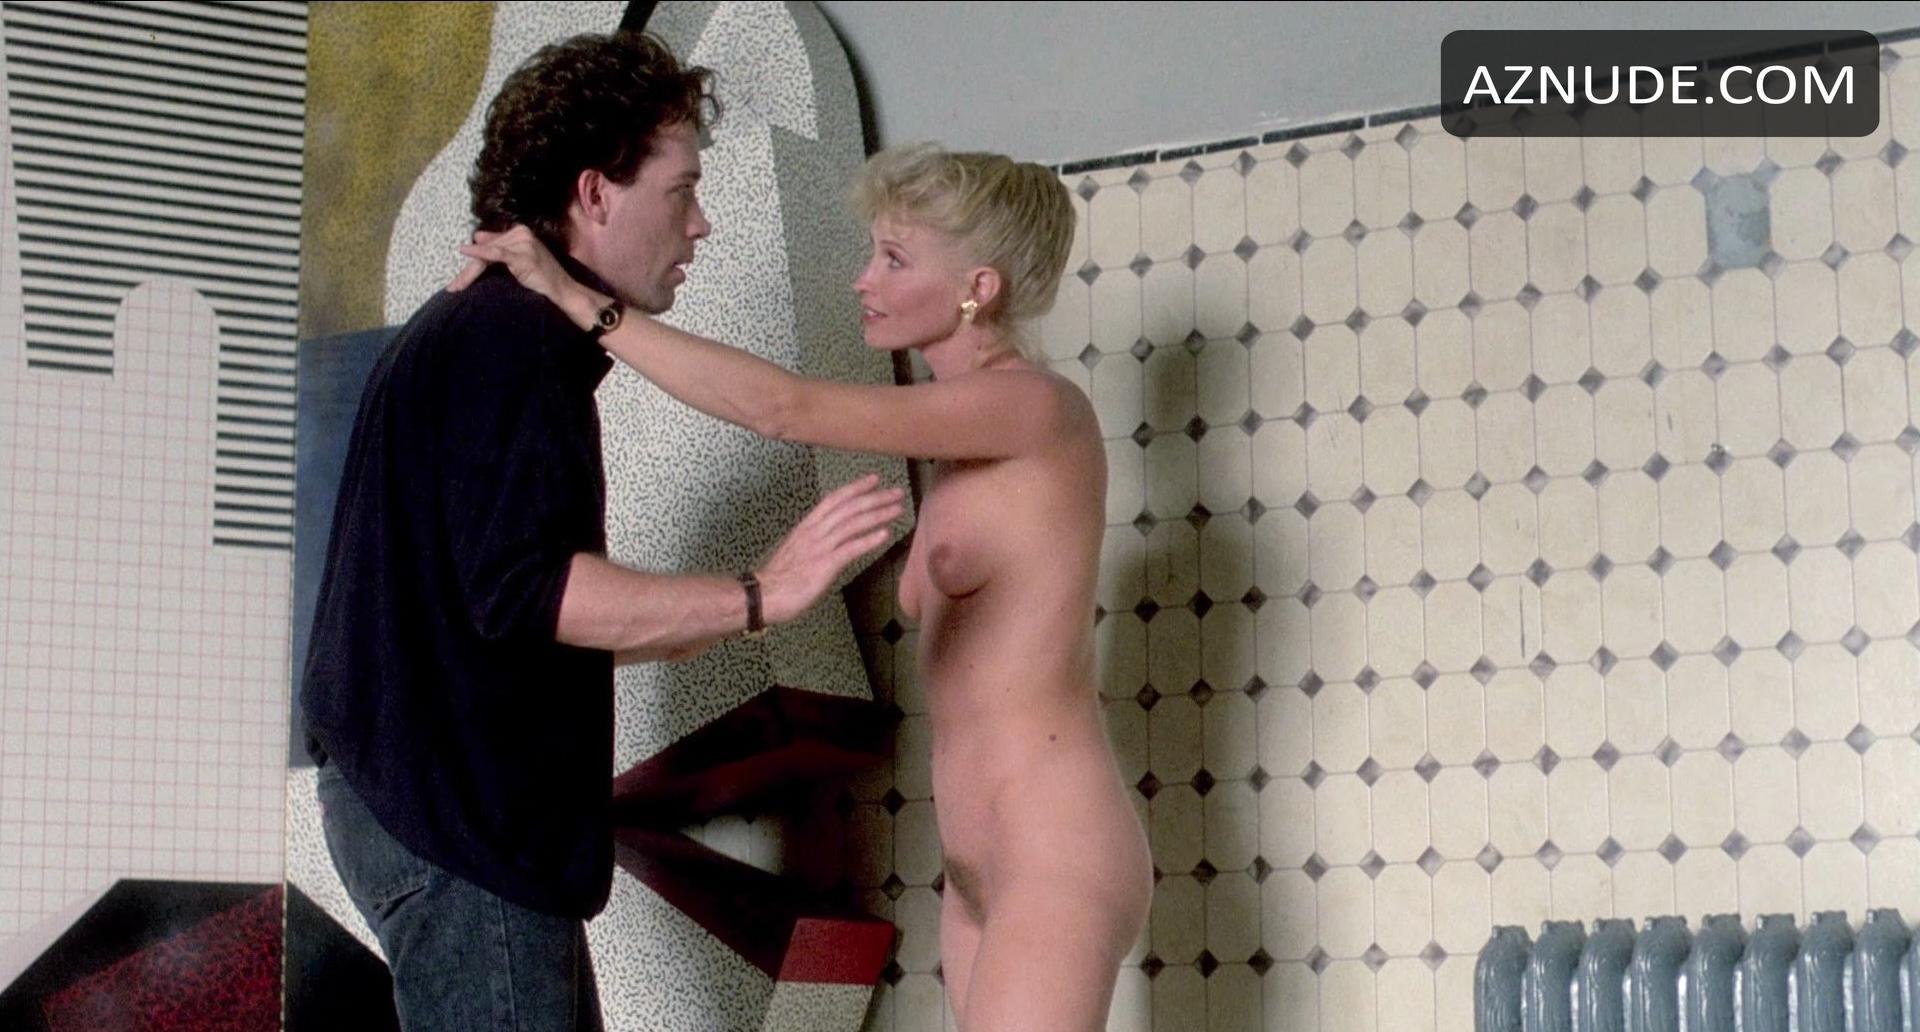 Virginia madsen nude sex in creator movie scandalplanetcom - 2 part 4